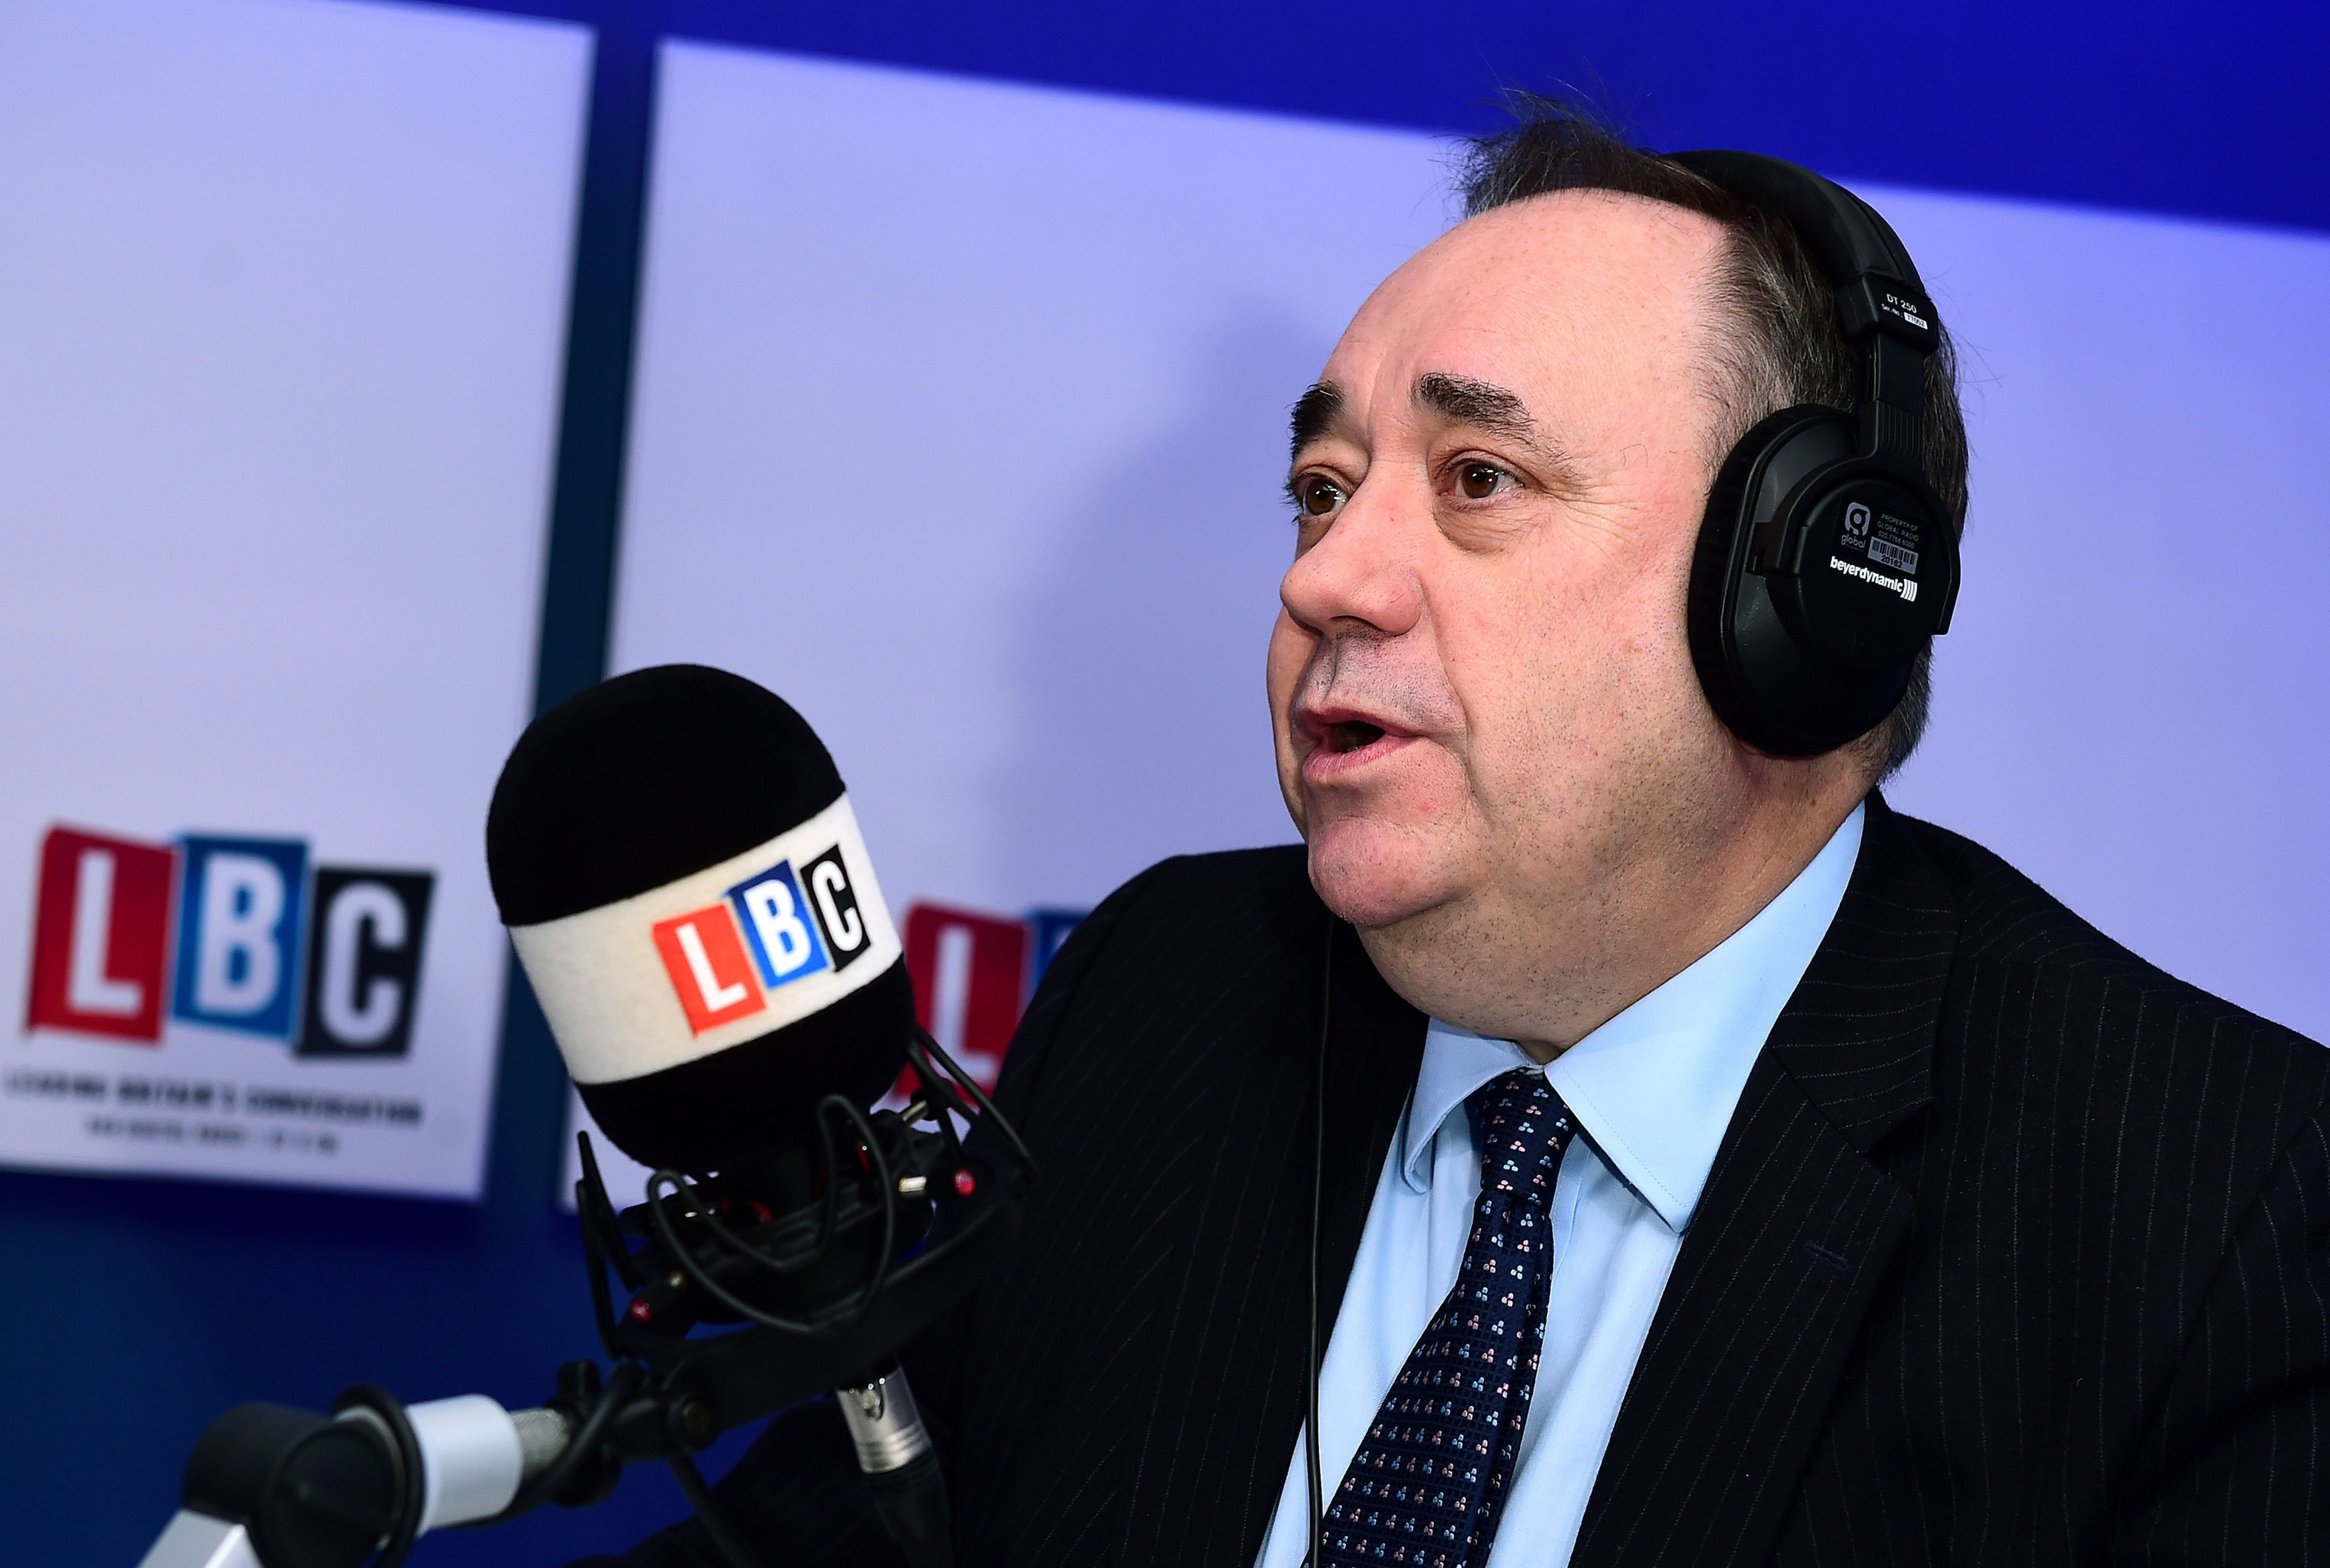 Alex Salmond's LBC Show Ends - But He Defies Calls To Stop Working With